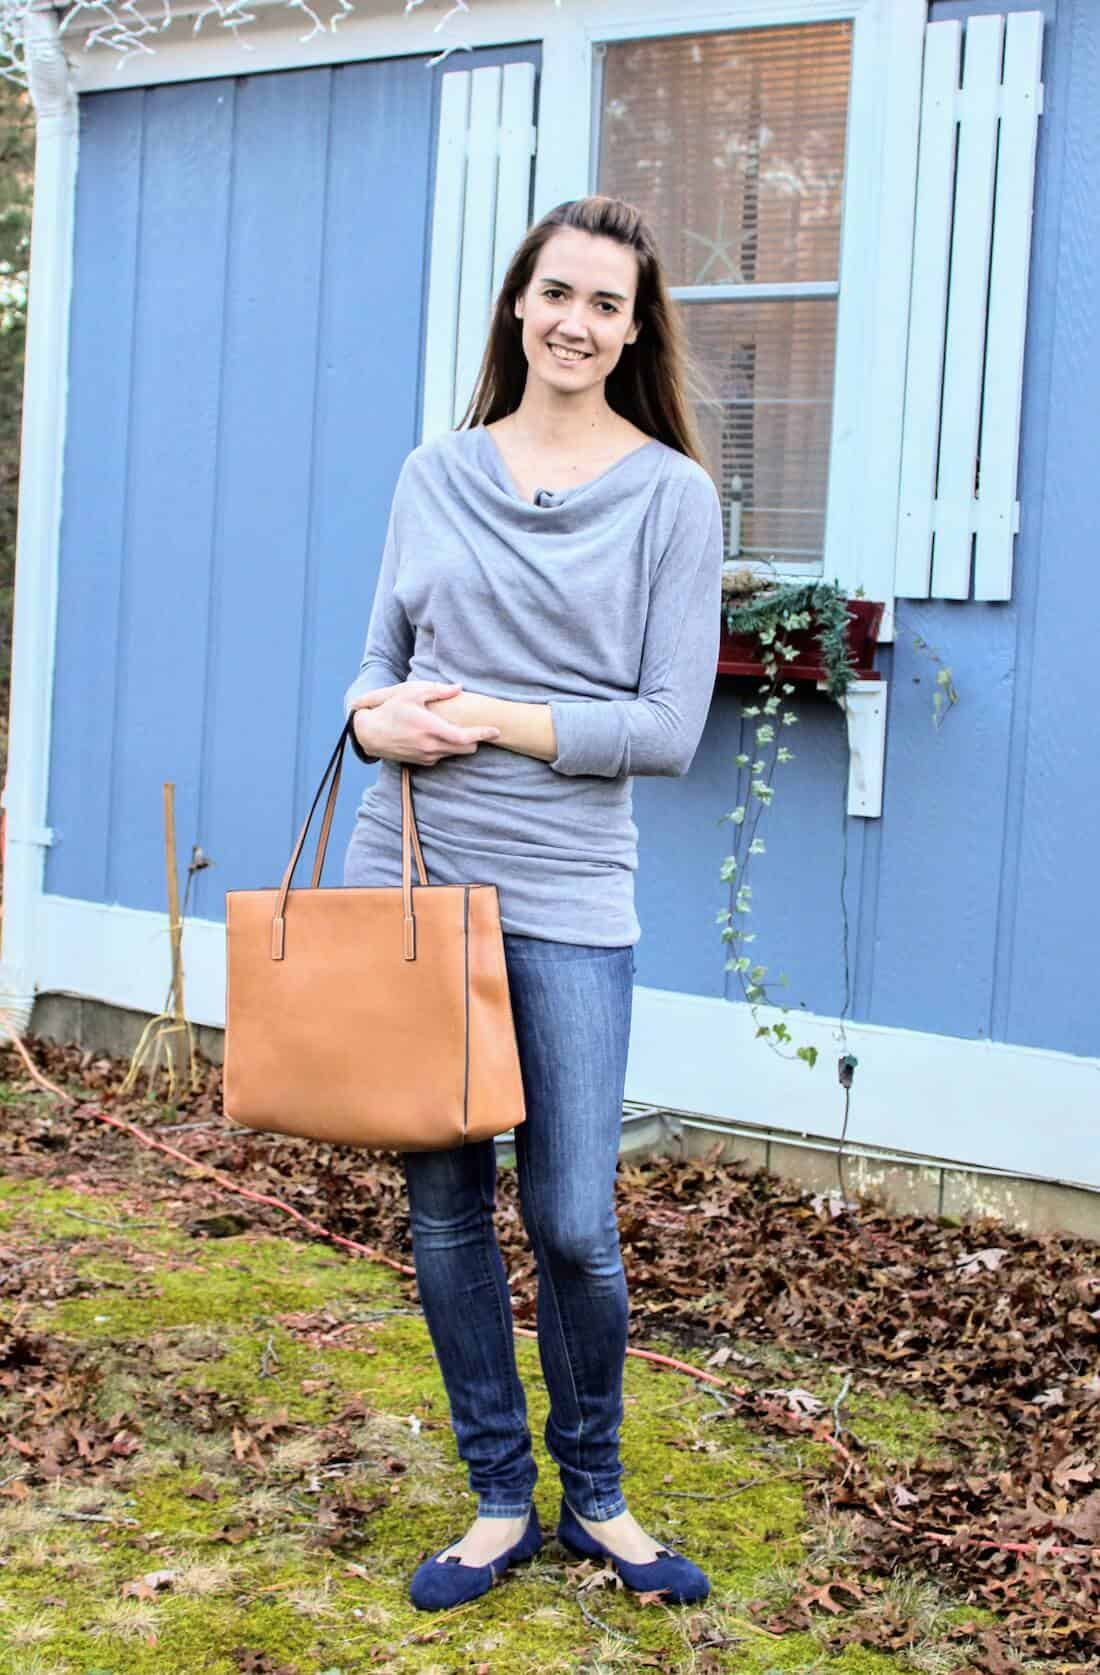 Shirts with ruching or layers are great for early maternity style! #maternityfashion